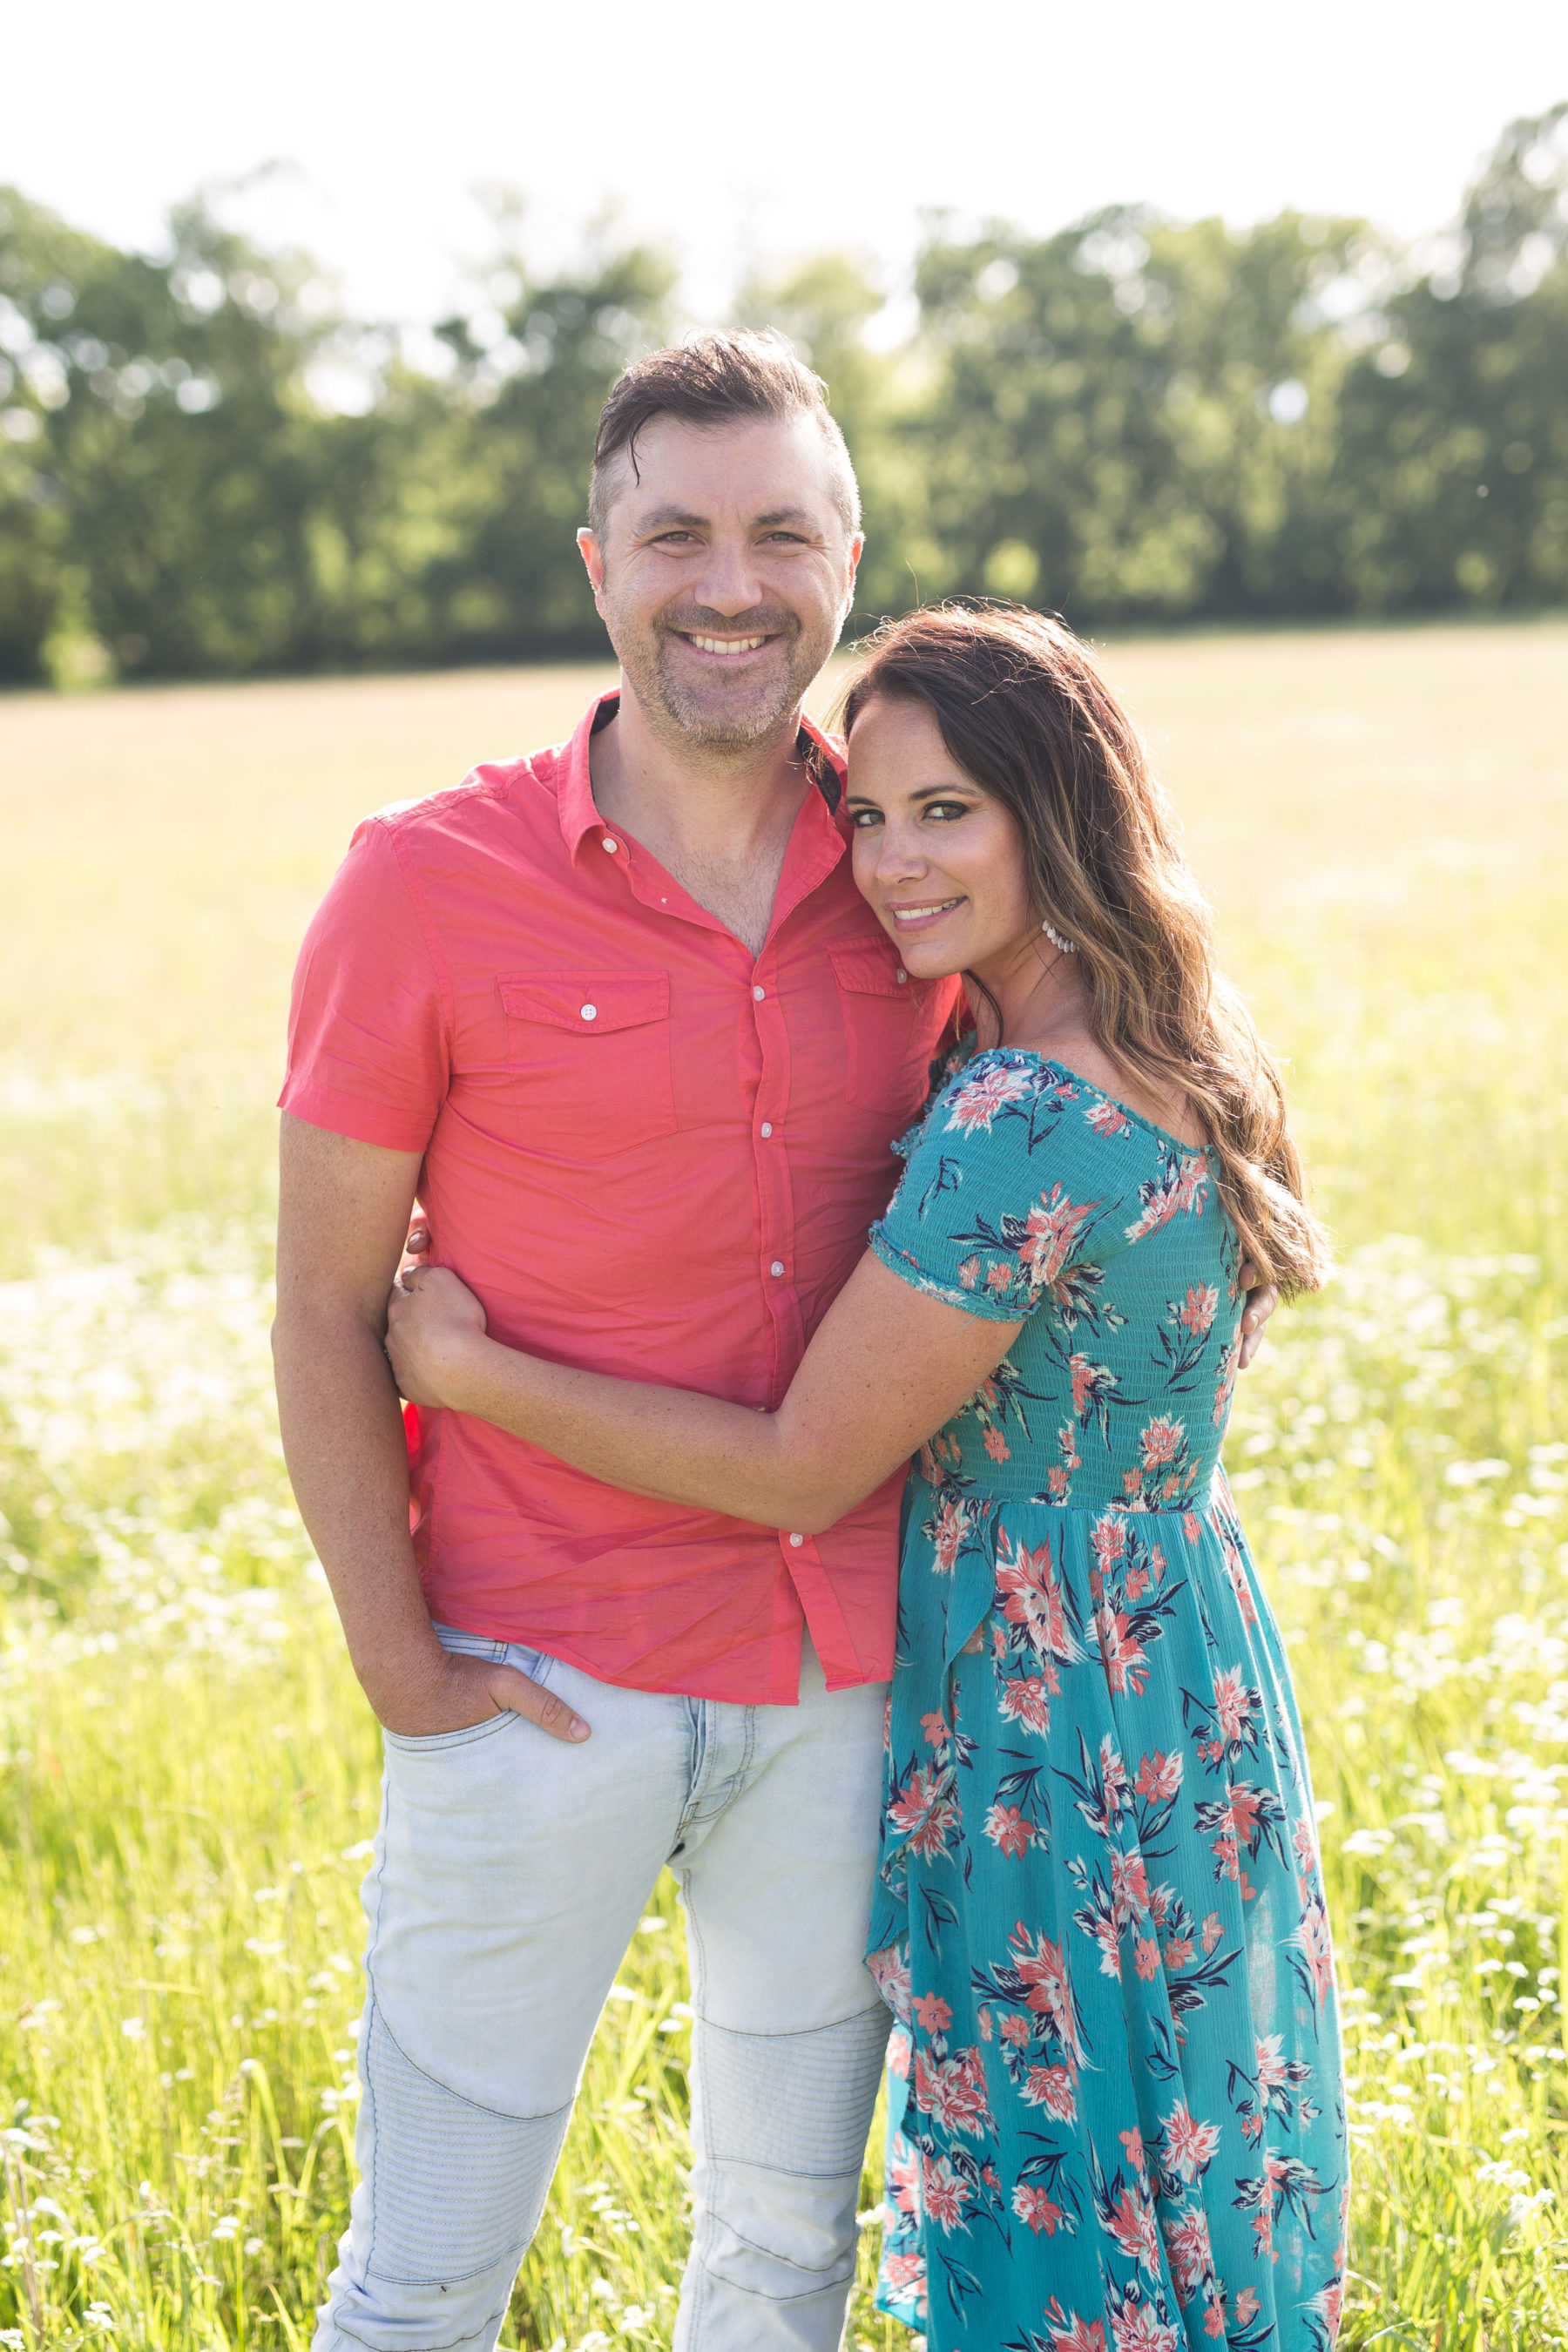 Mini Family Photo Session by Becka Edmonson Photography featured on Nashville Bride Guide!